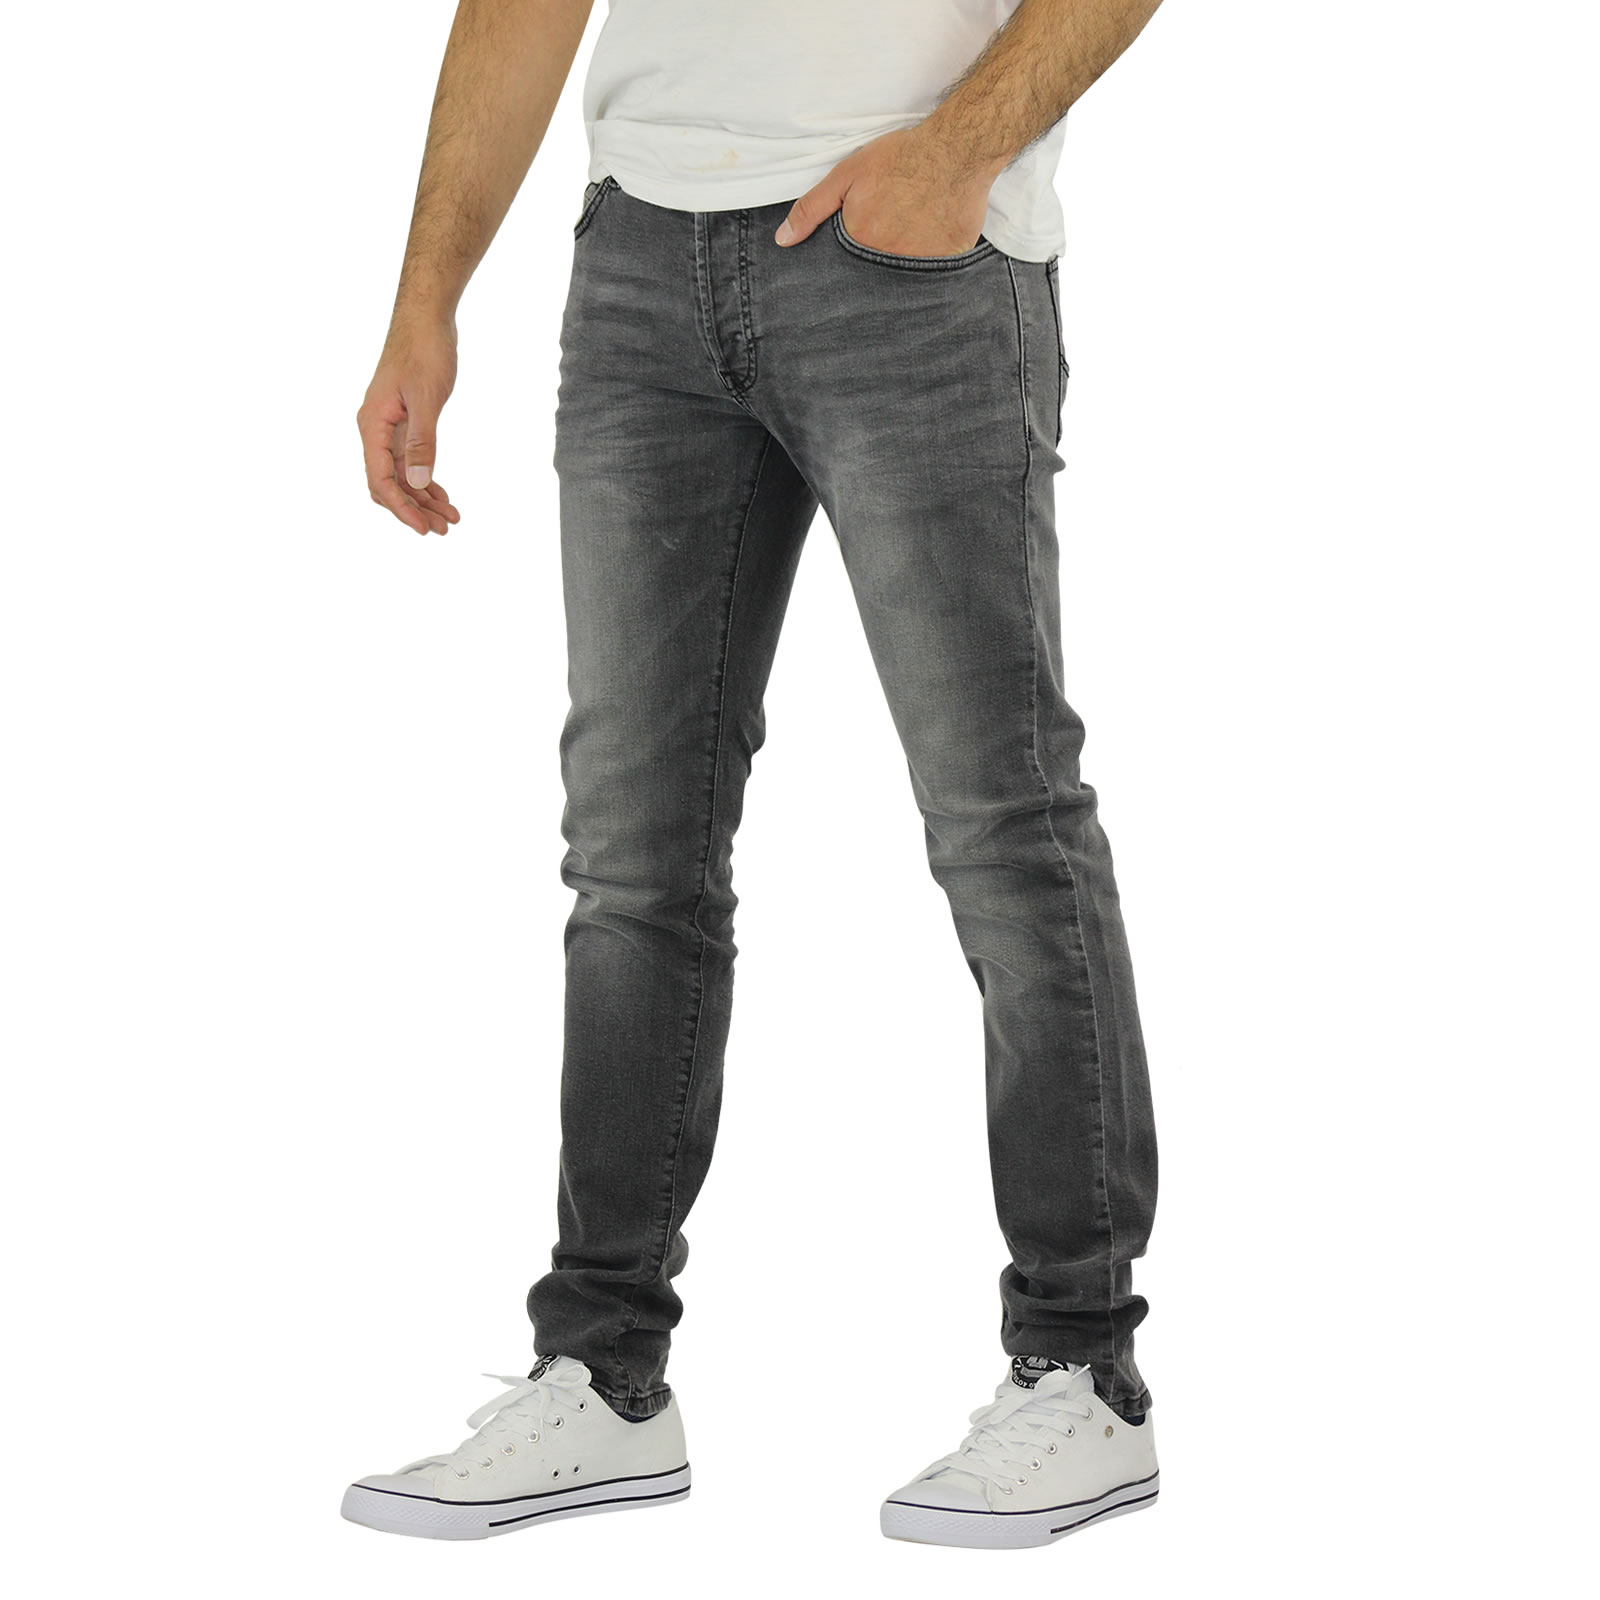 Mens Jeans Firetrap Denhoff Skinny Stretch Denim Pants